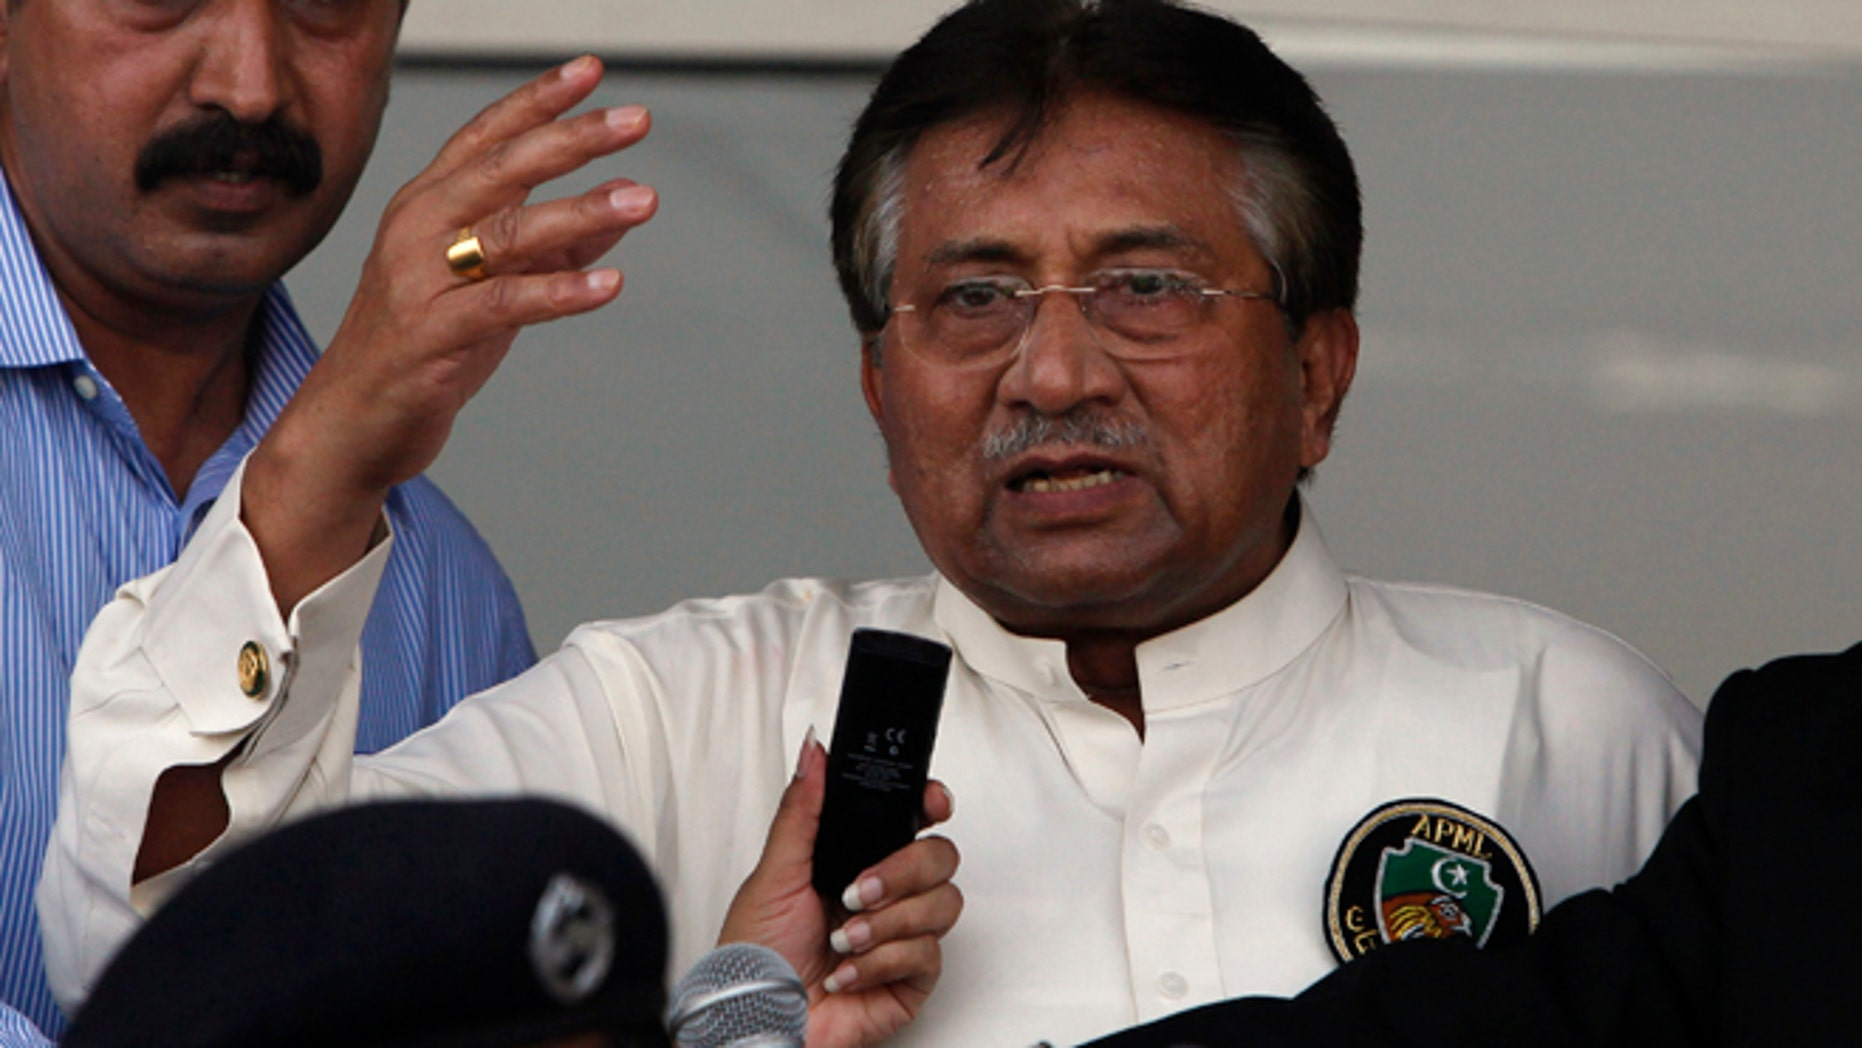 Former president, Pervez Musharraf, recently arrives at an airport in Karachi. Pakistan's former leader admits his regime had a secret pact to allow drone strikes in the country.